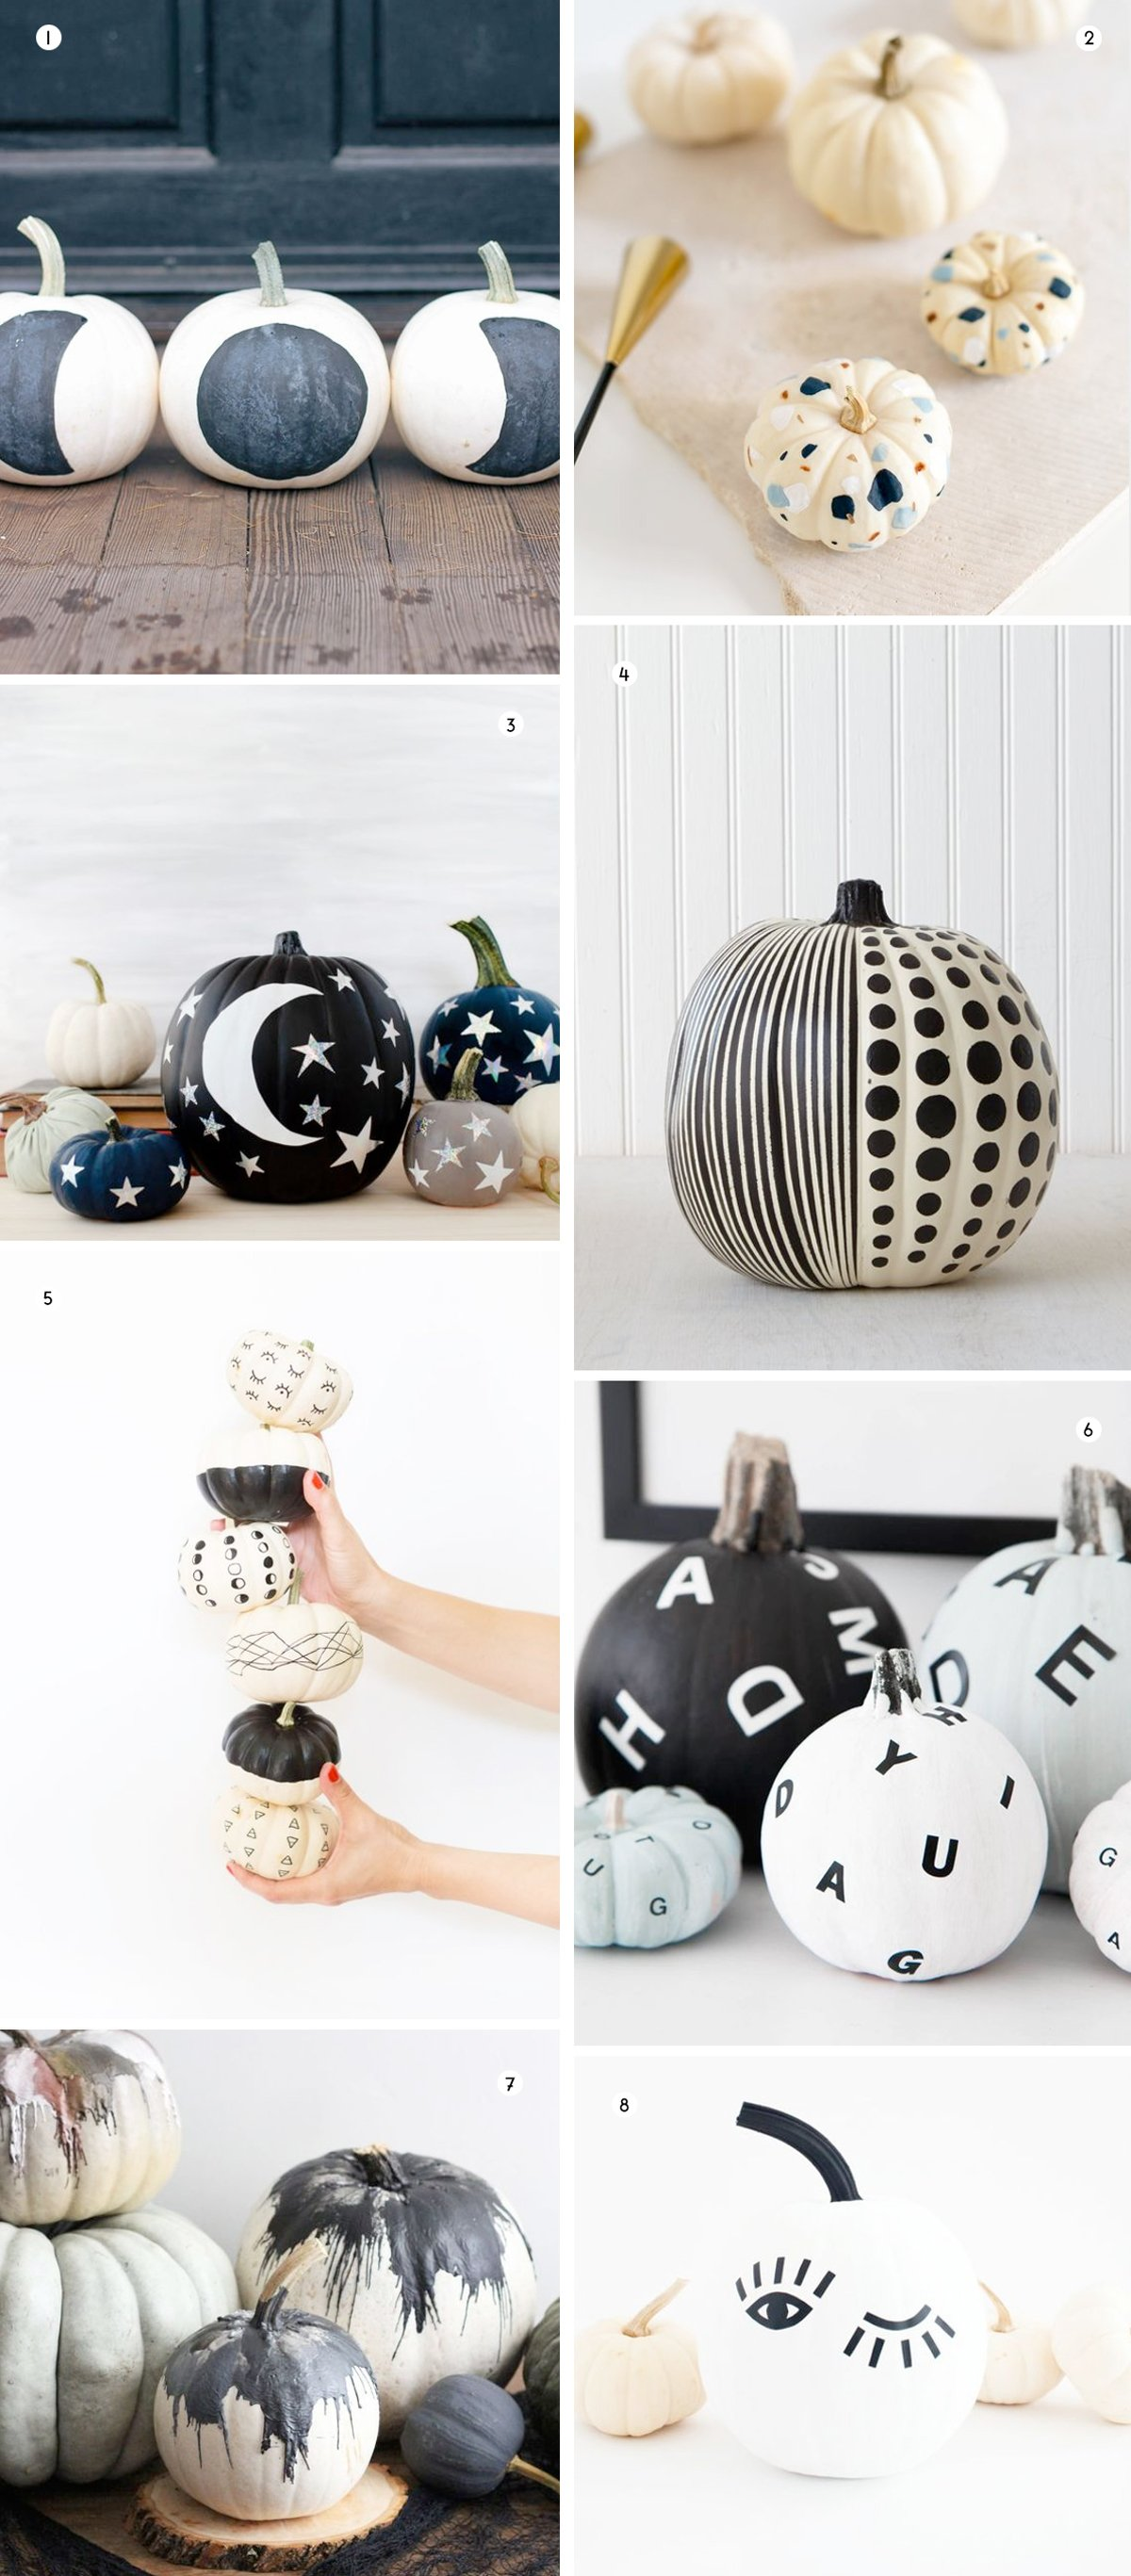 Monochromatic and modern ideas for no-carve pumpkin-decorating